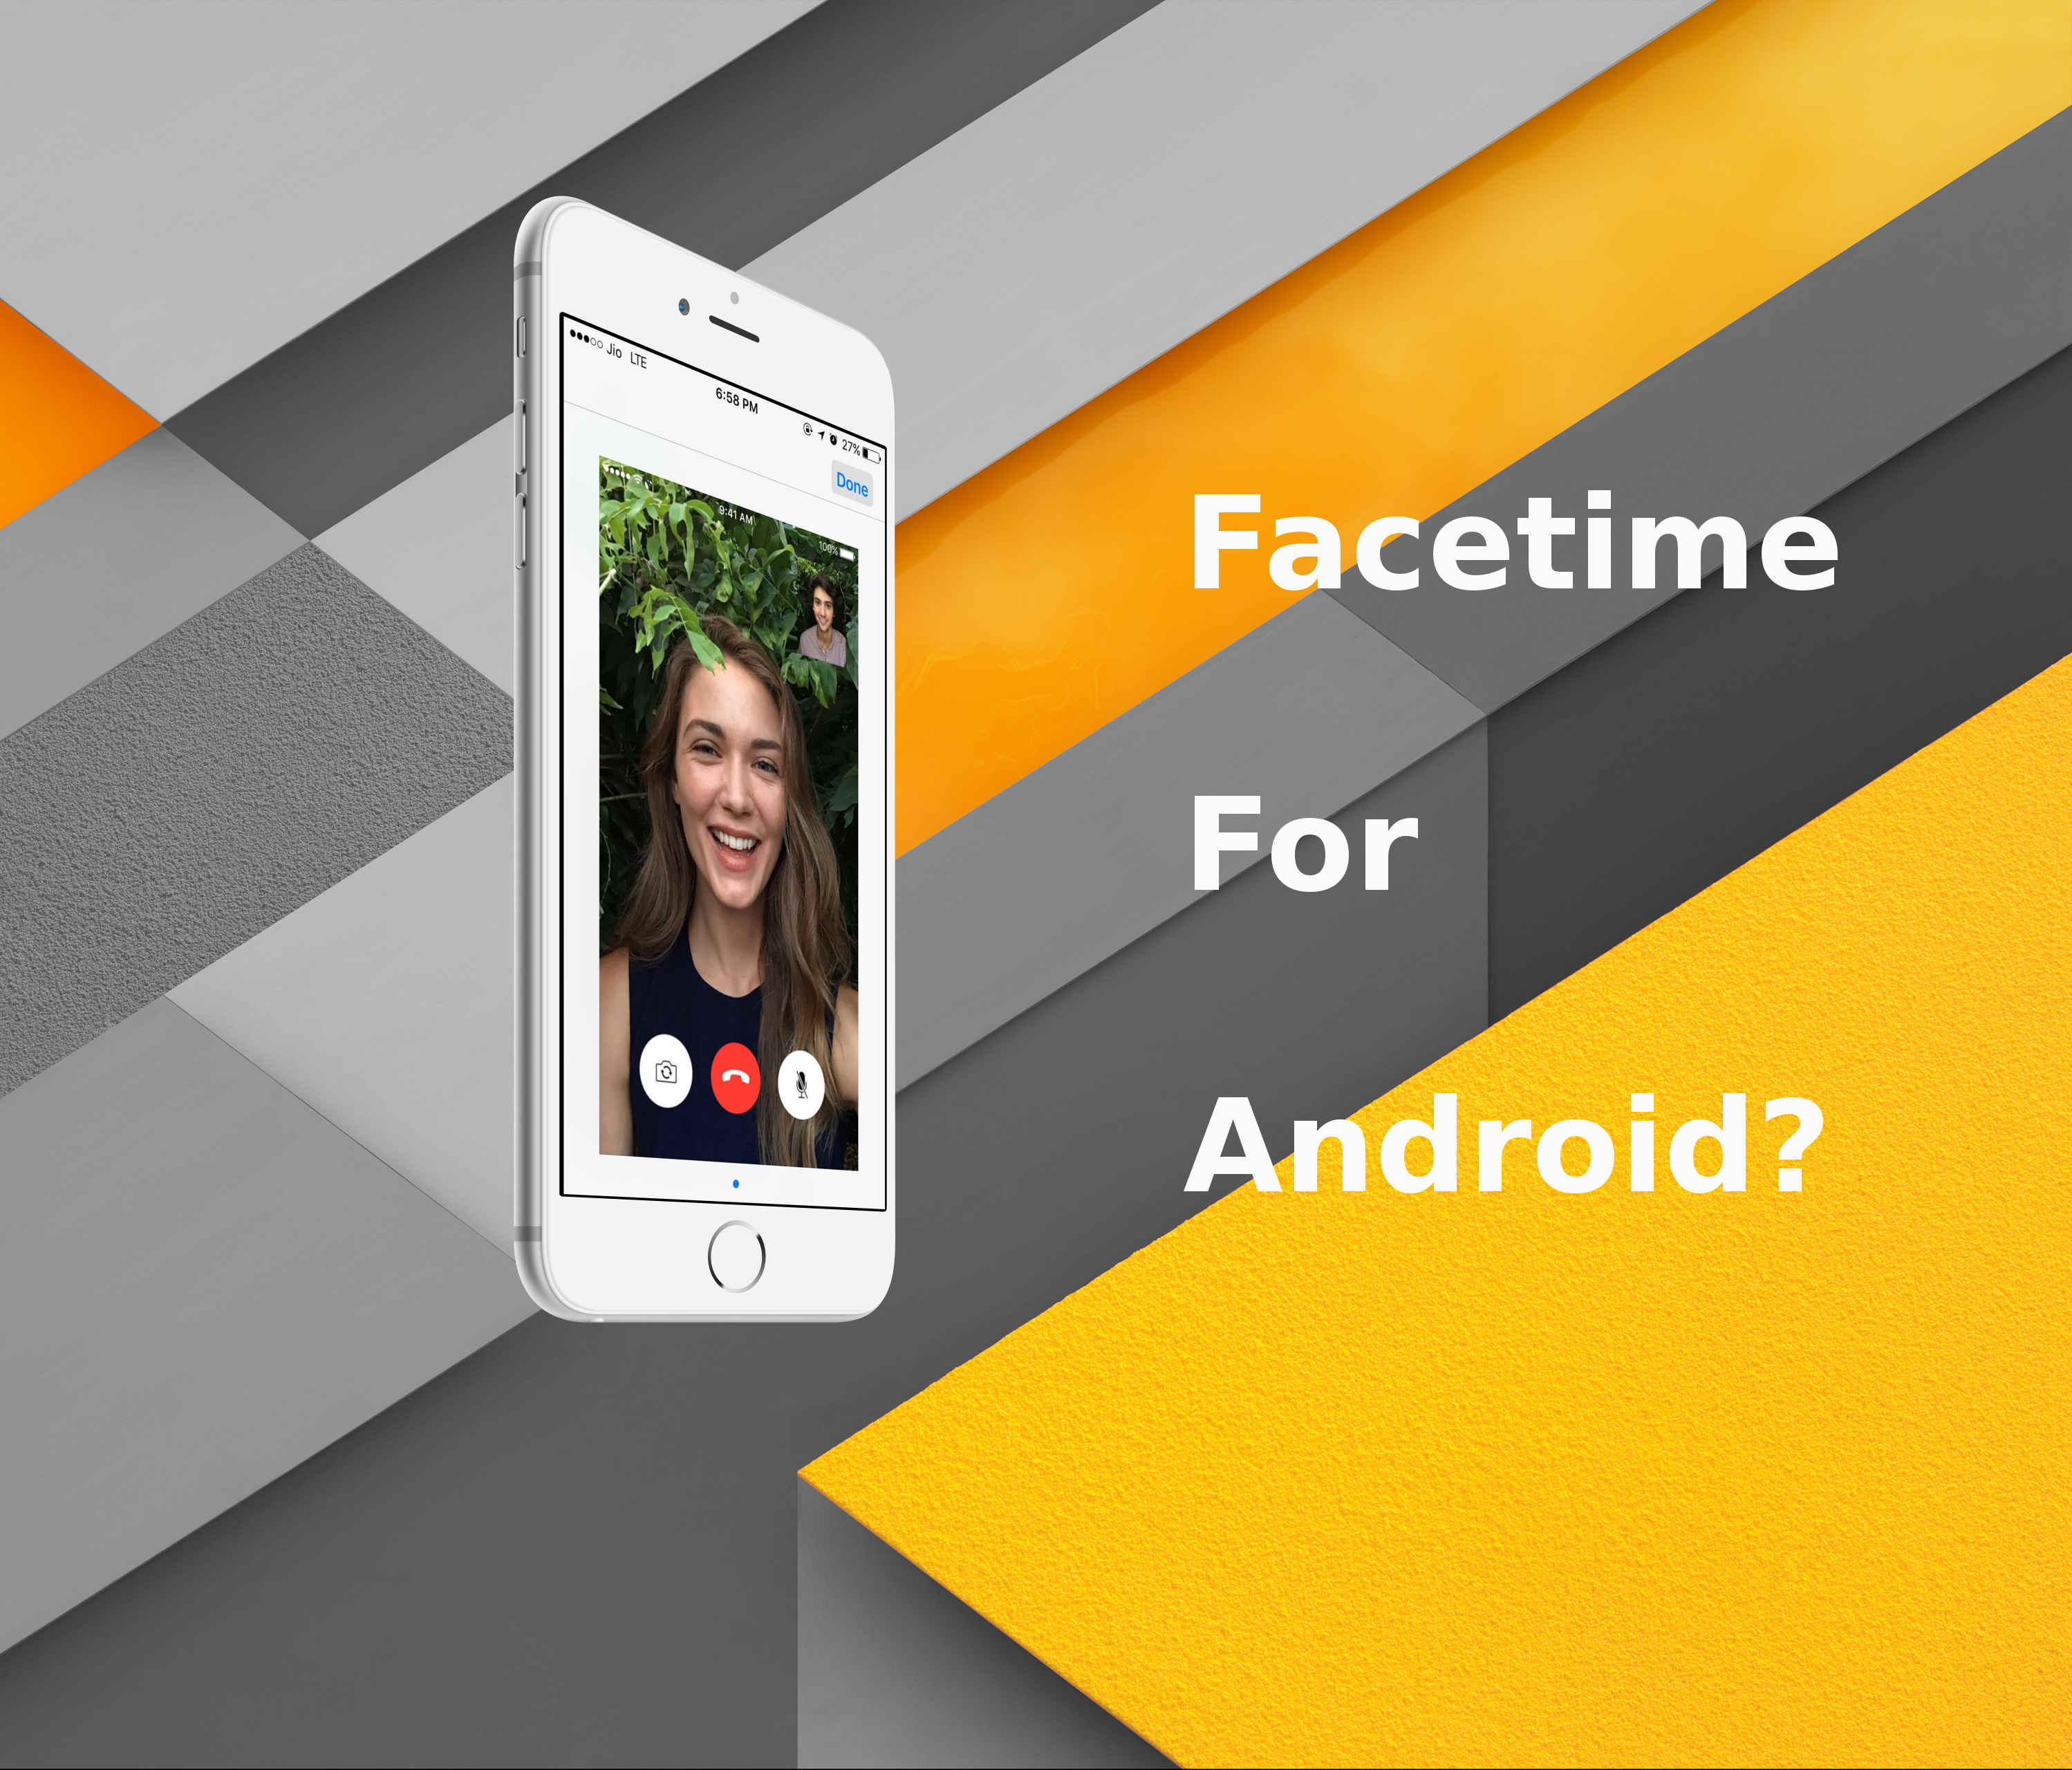 facetime for android 28 images facetime for android free facetime for android best